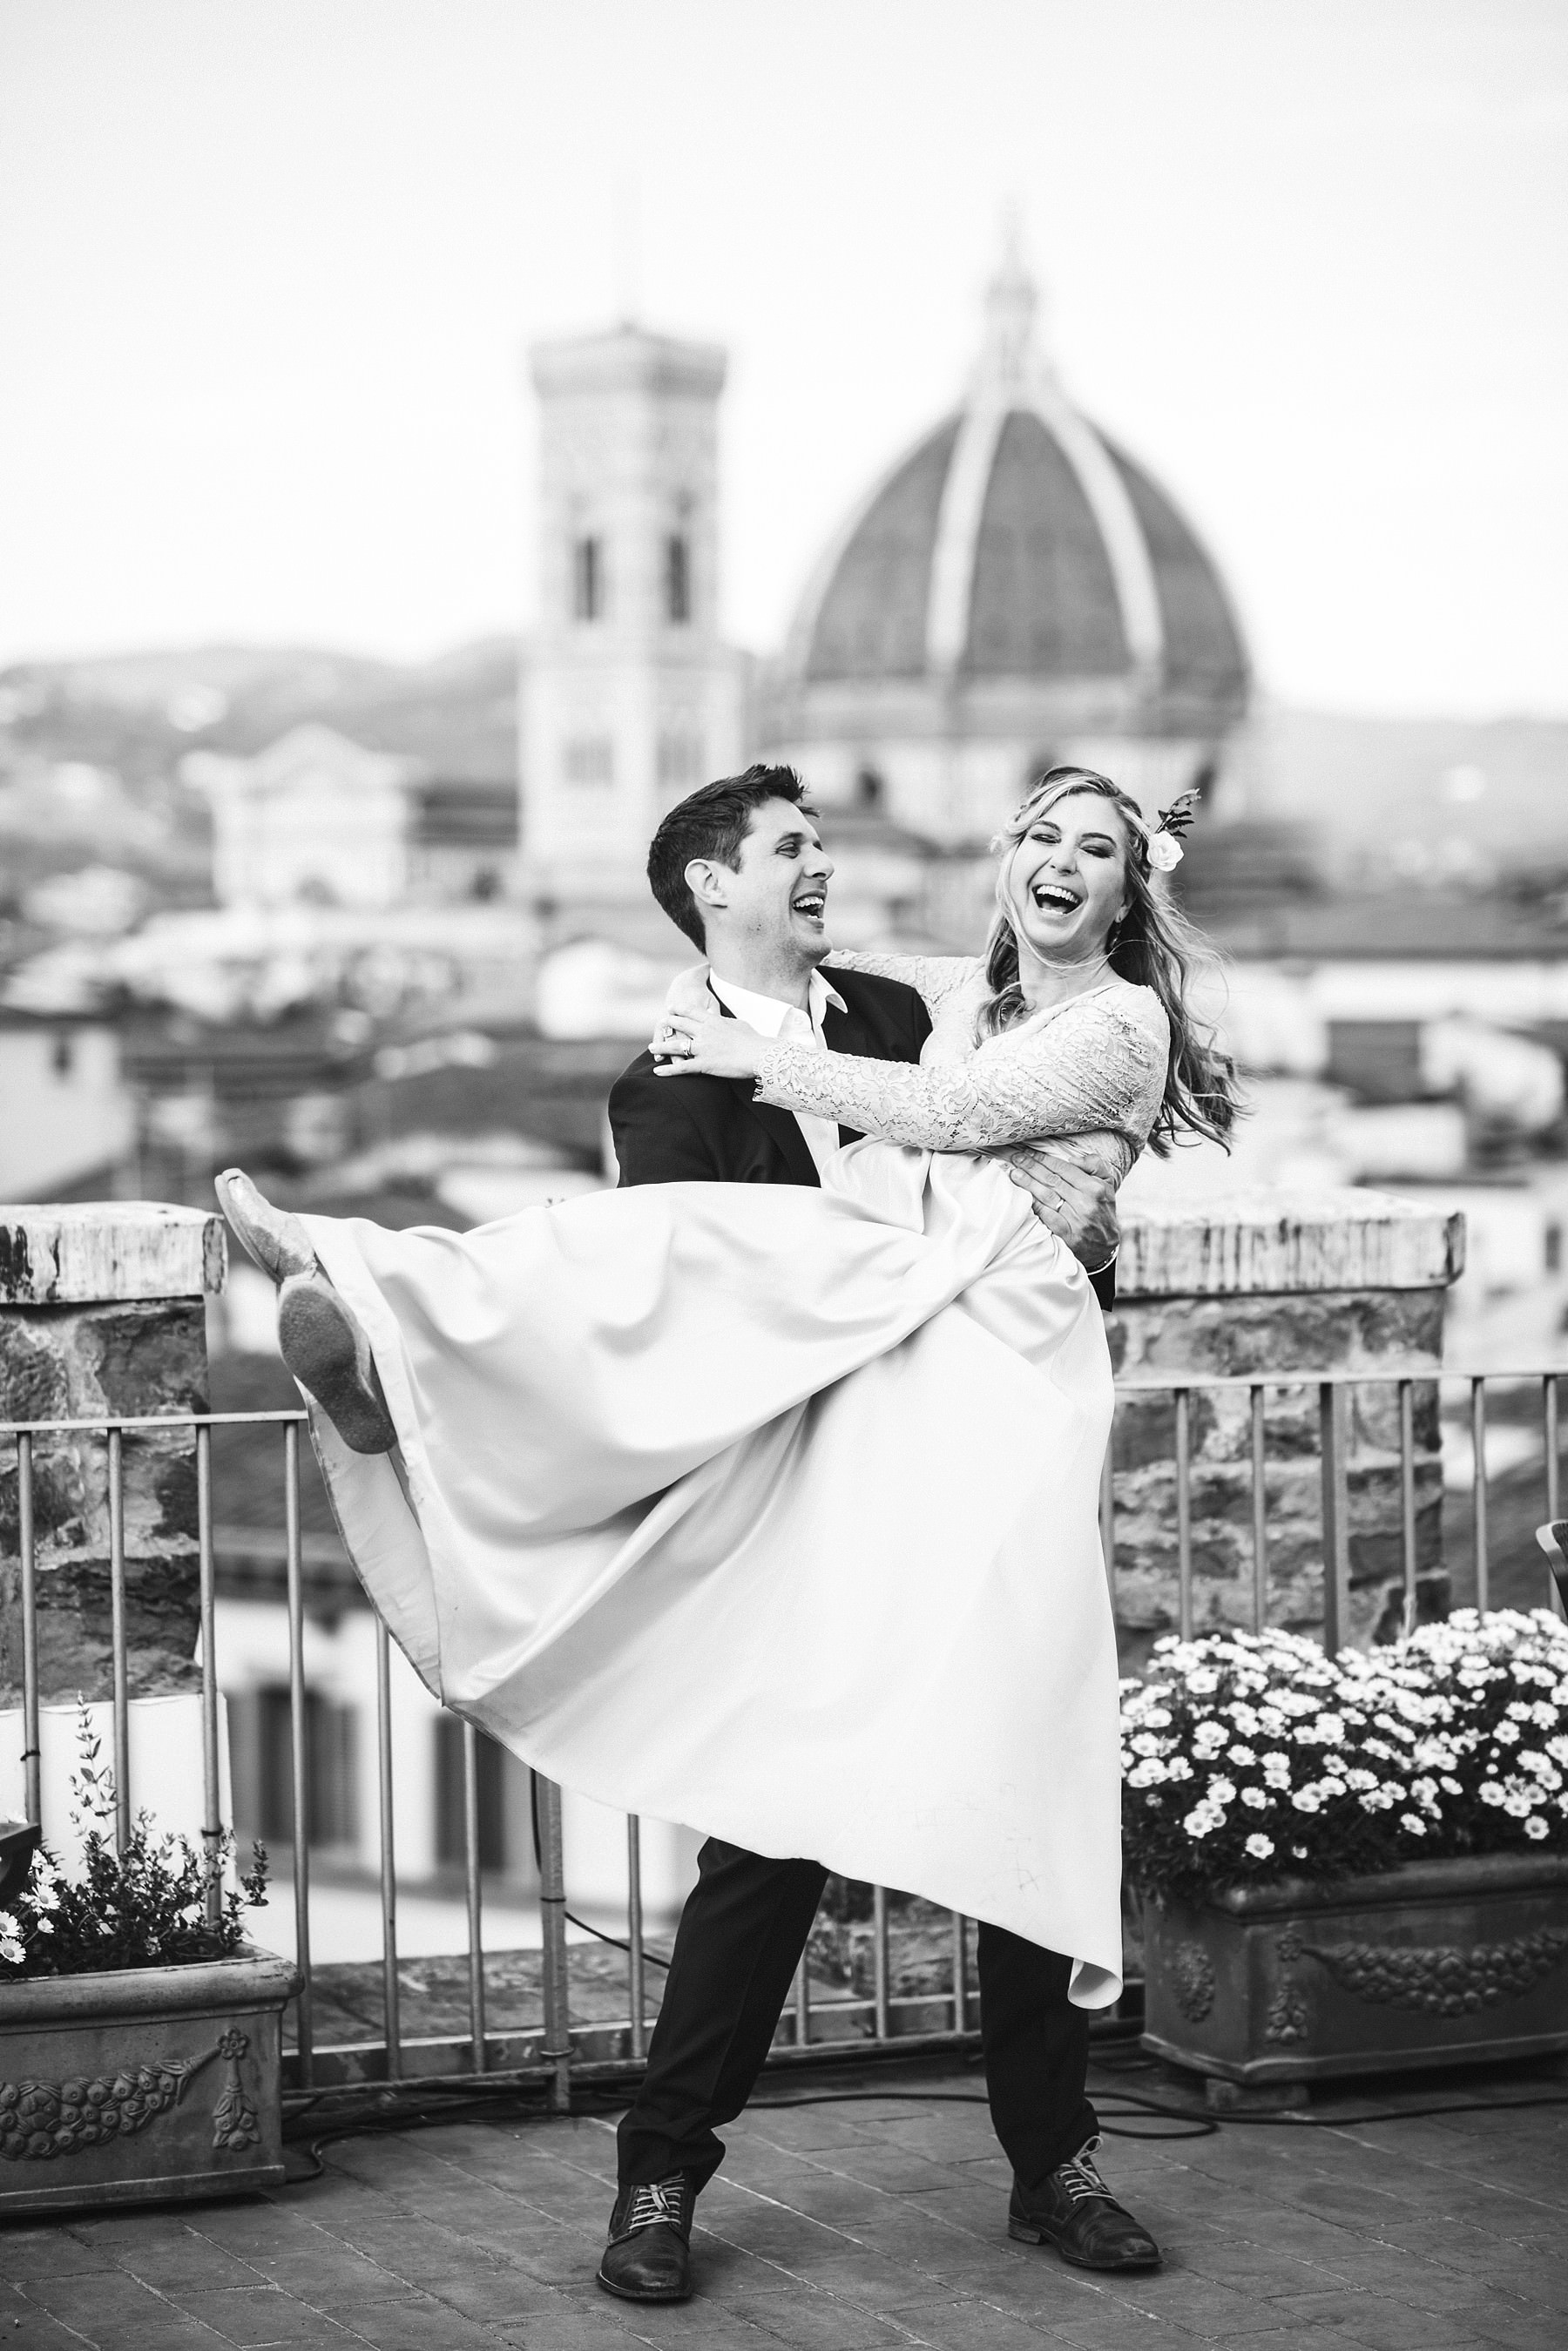 Emotional and intimate vows renewal event photo shoot in Florence at Antica Torre Tornabuoni top terrace with breathtaking view of the Duomo